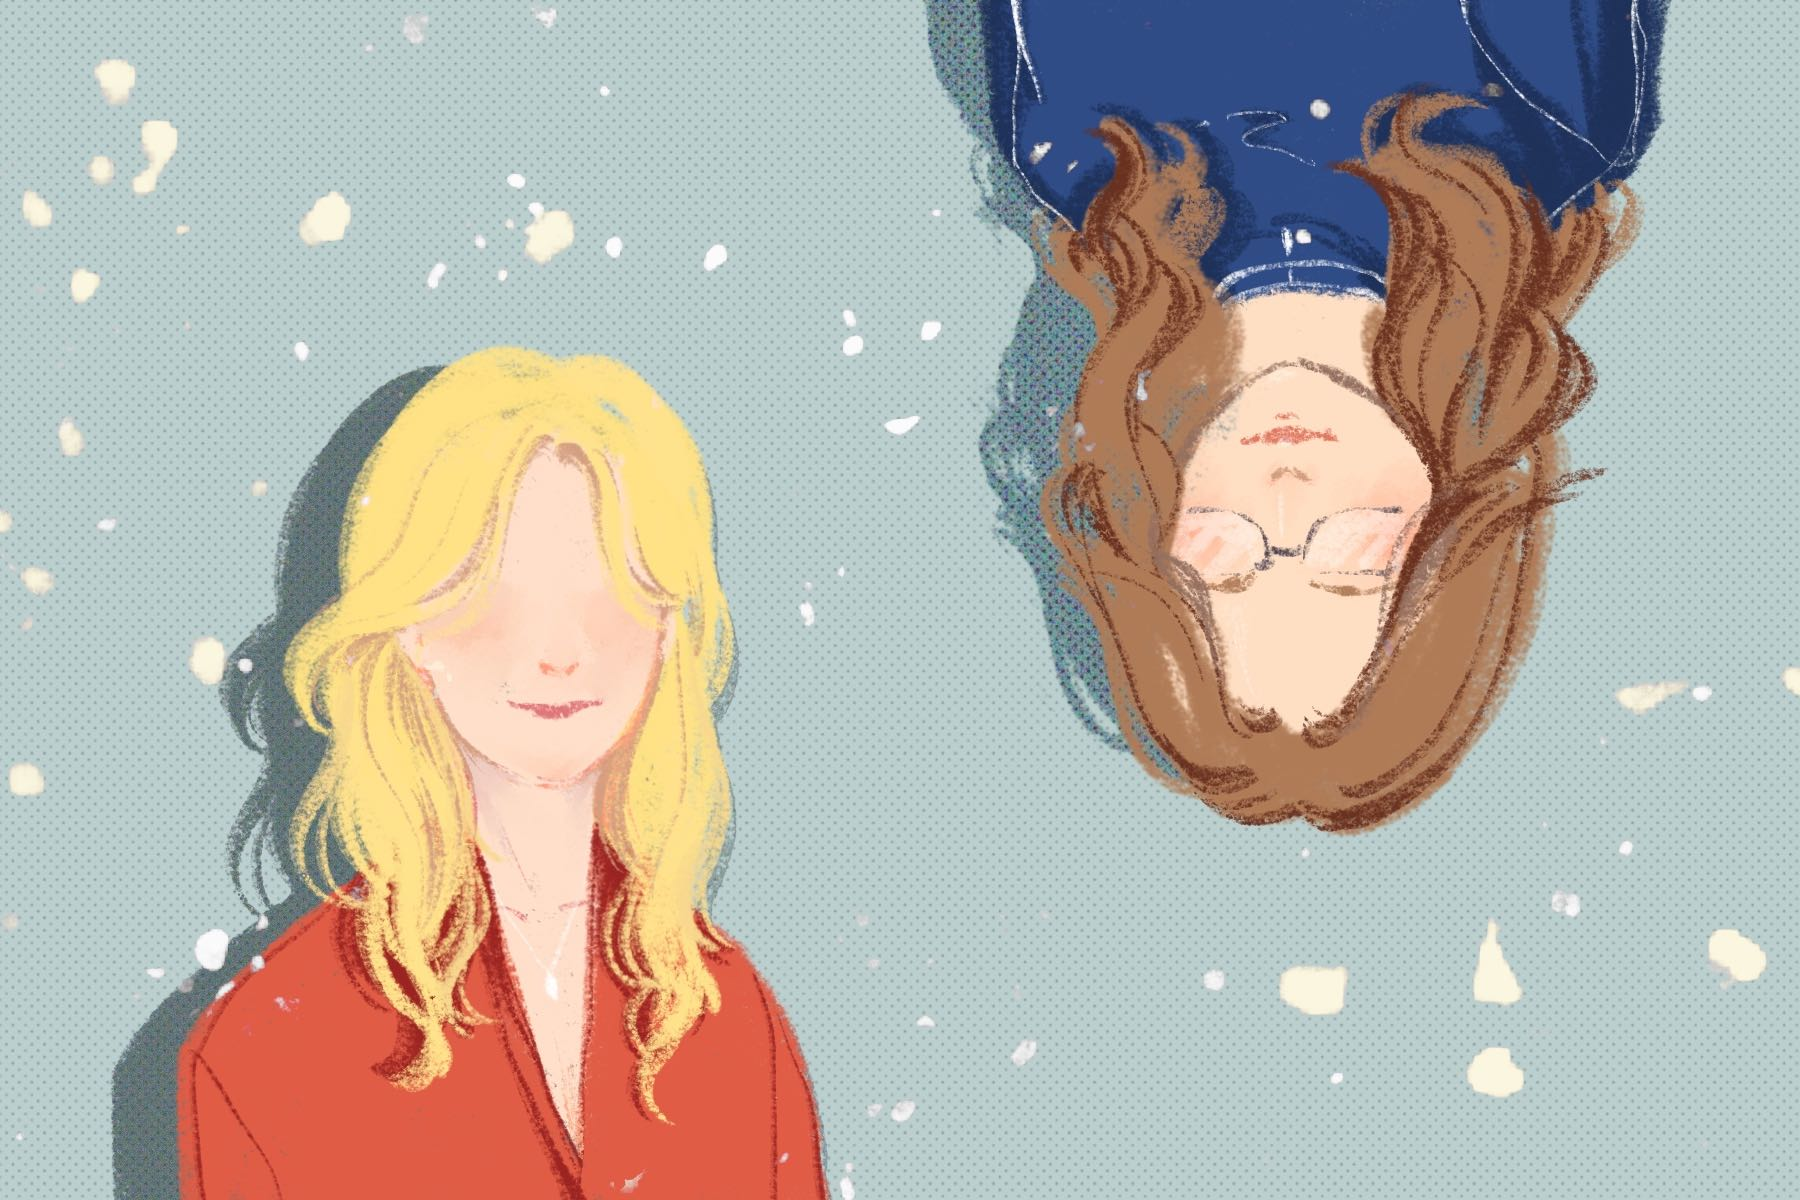 Office Ladies illustration by Alice Yuan for article by Megan Thompson